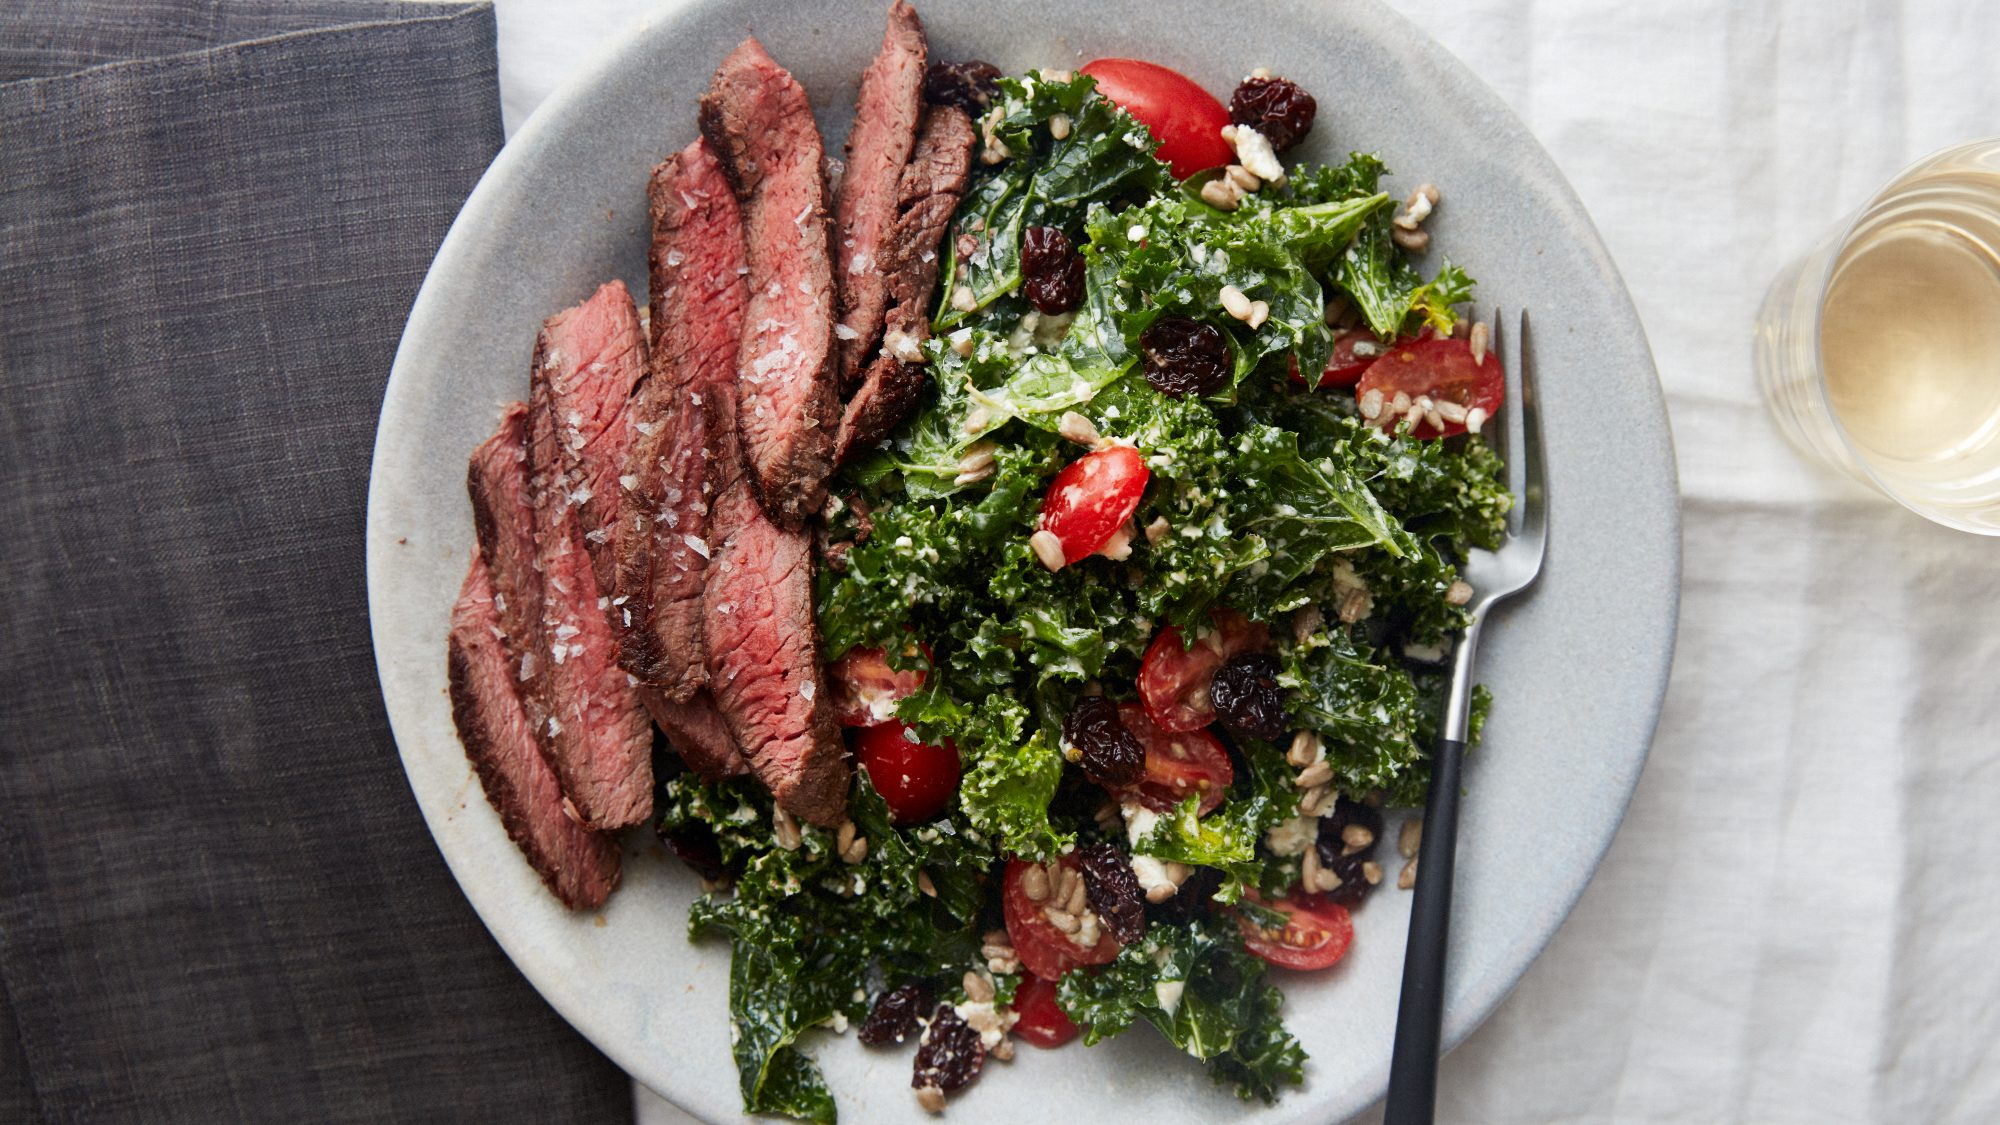 Plated Steak and Kale Salad